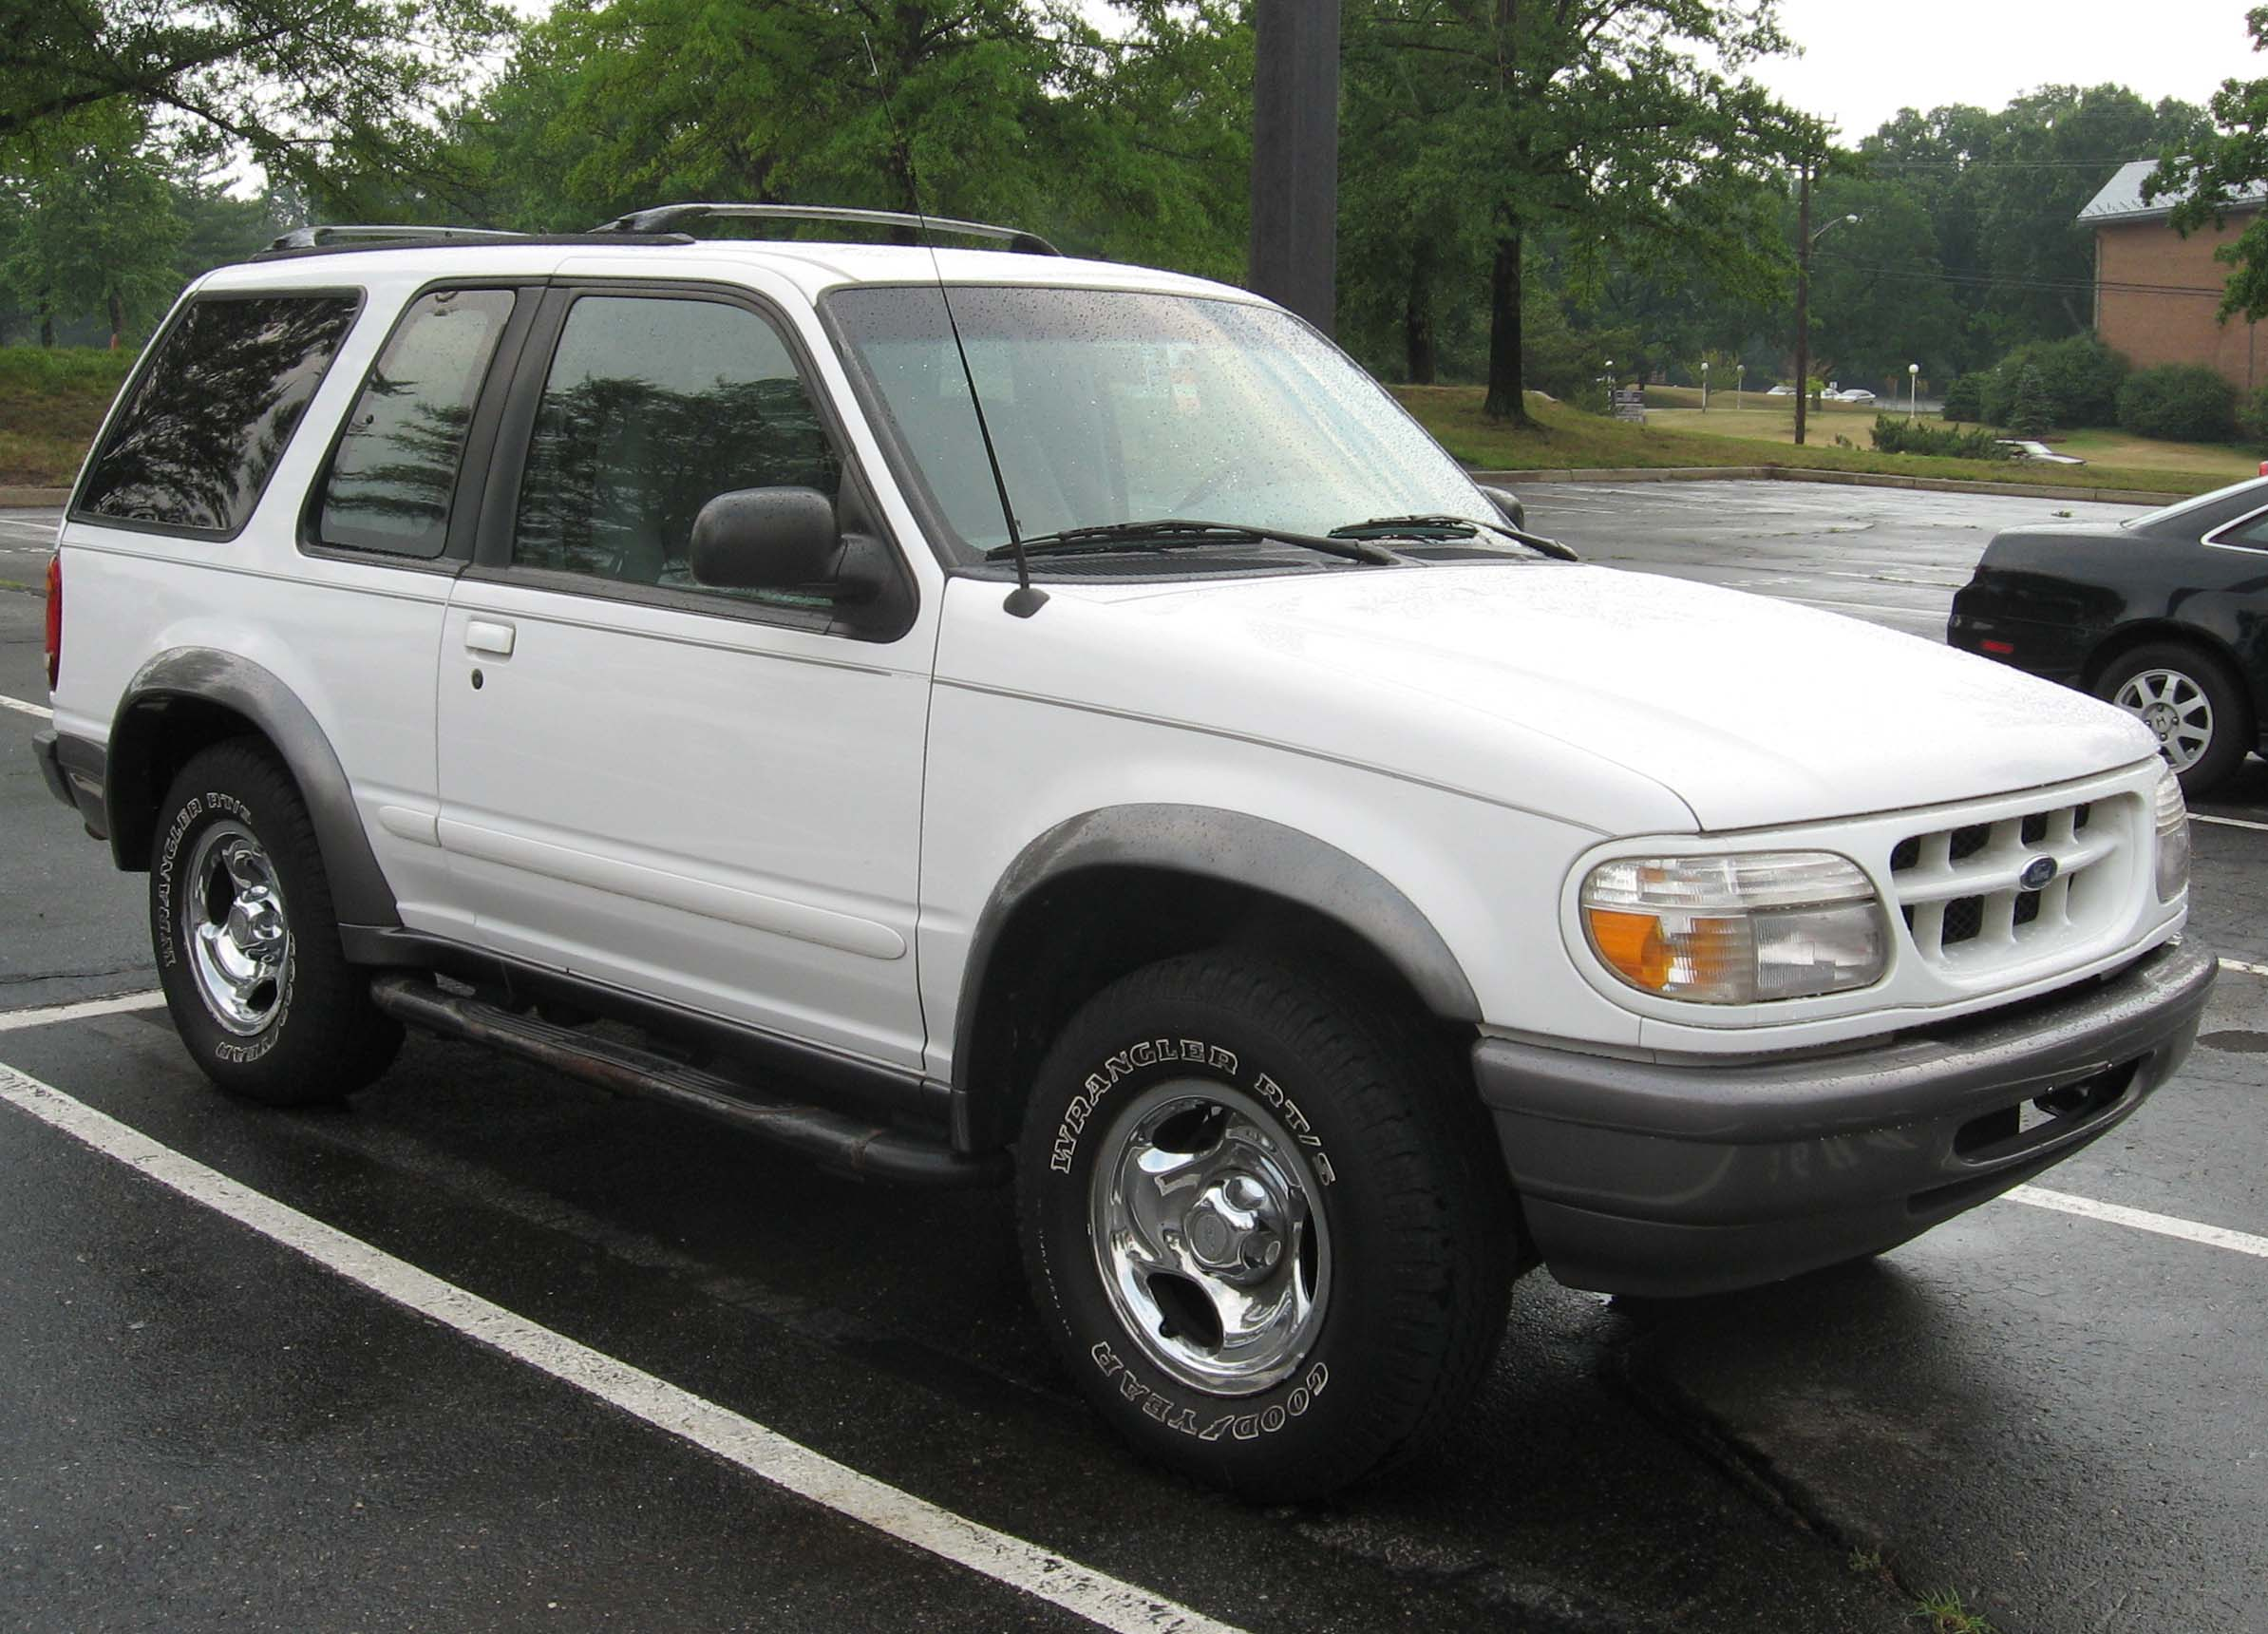 File:99-01 Ford Explorer Sport.jpg - Wikipedia, the free encyclopedia